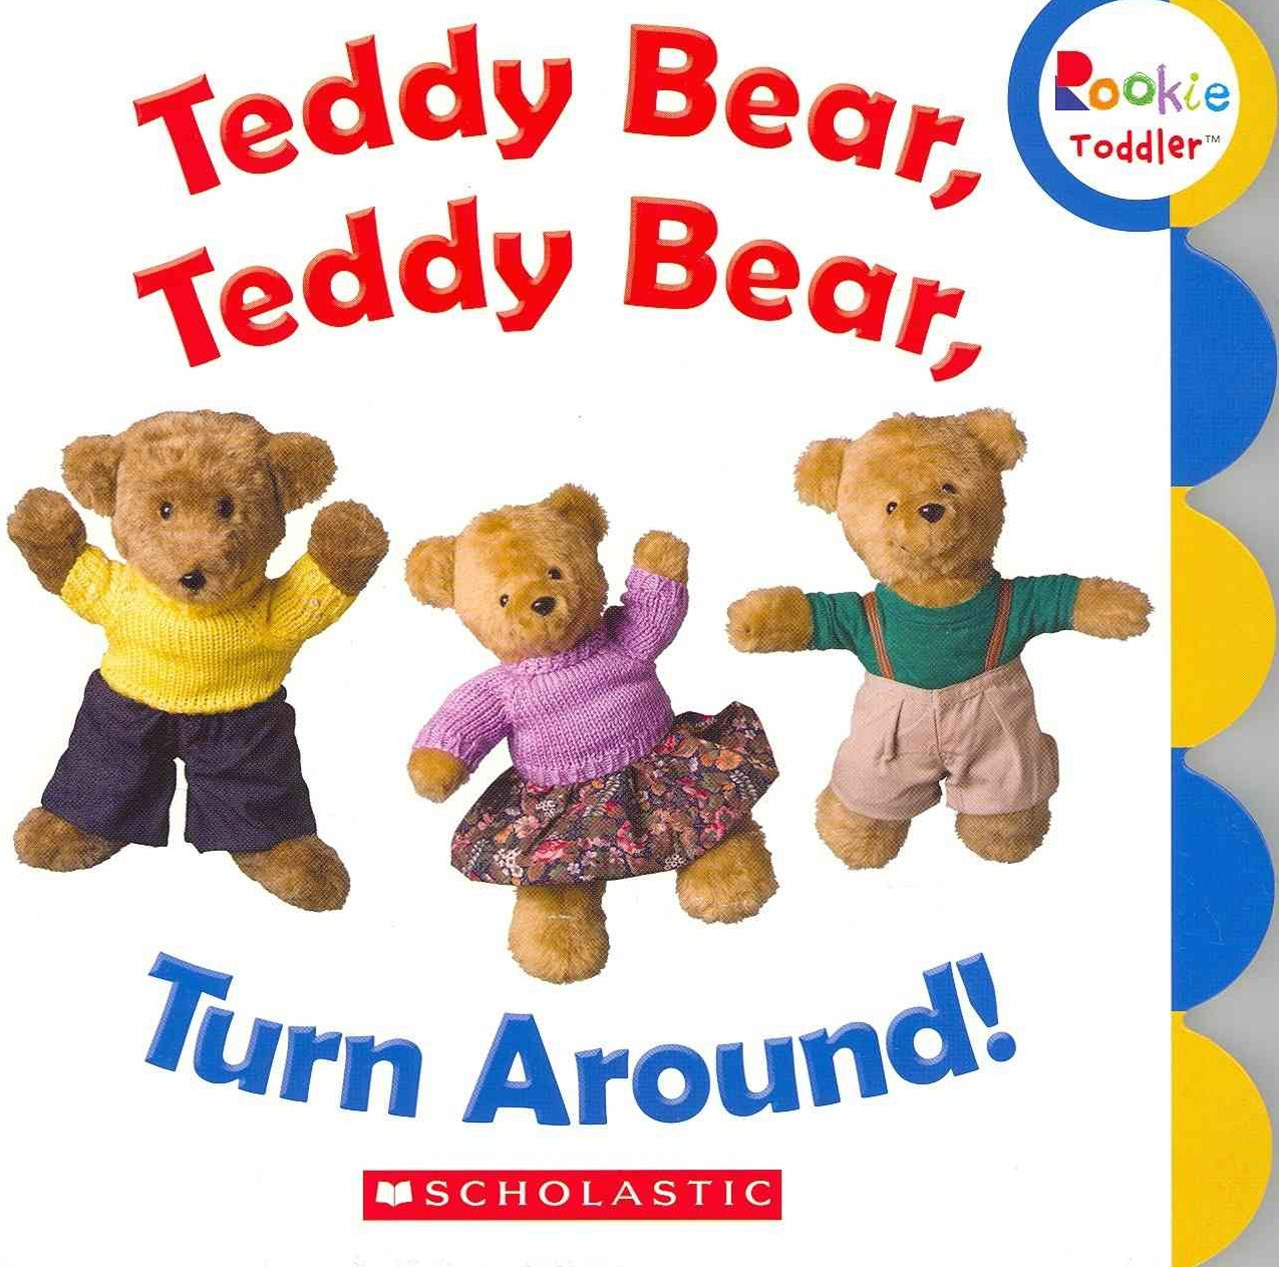 Teddy Bear, Teddy Bear, Turn Around